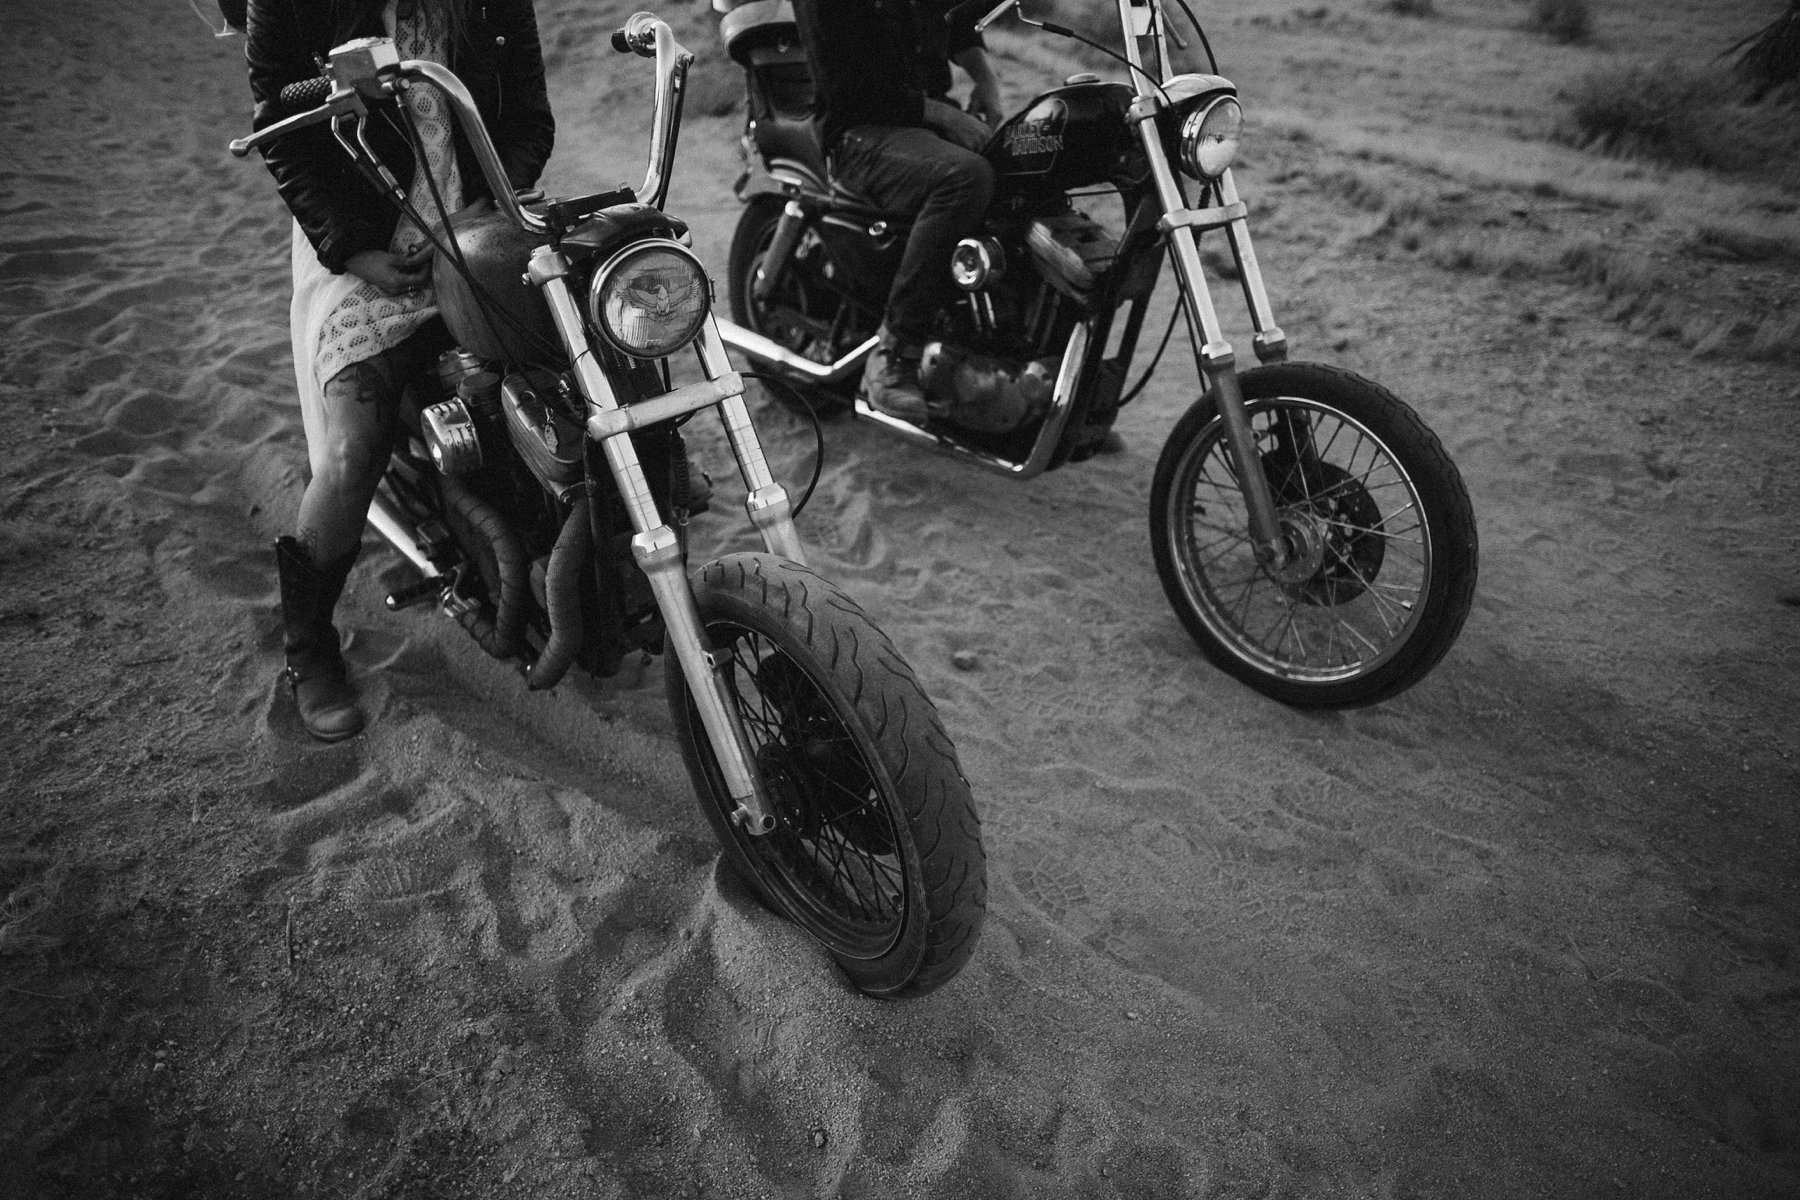 motorcycle-elopement-in-joshua-tree_0031.jpg